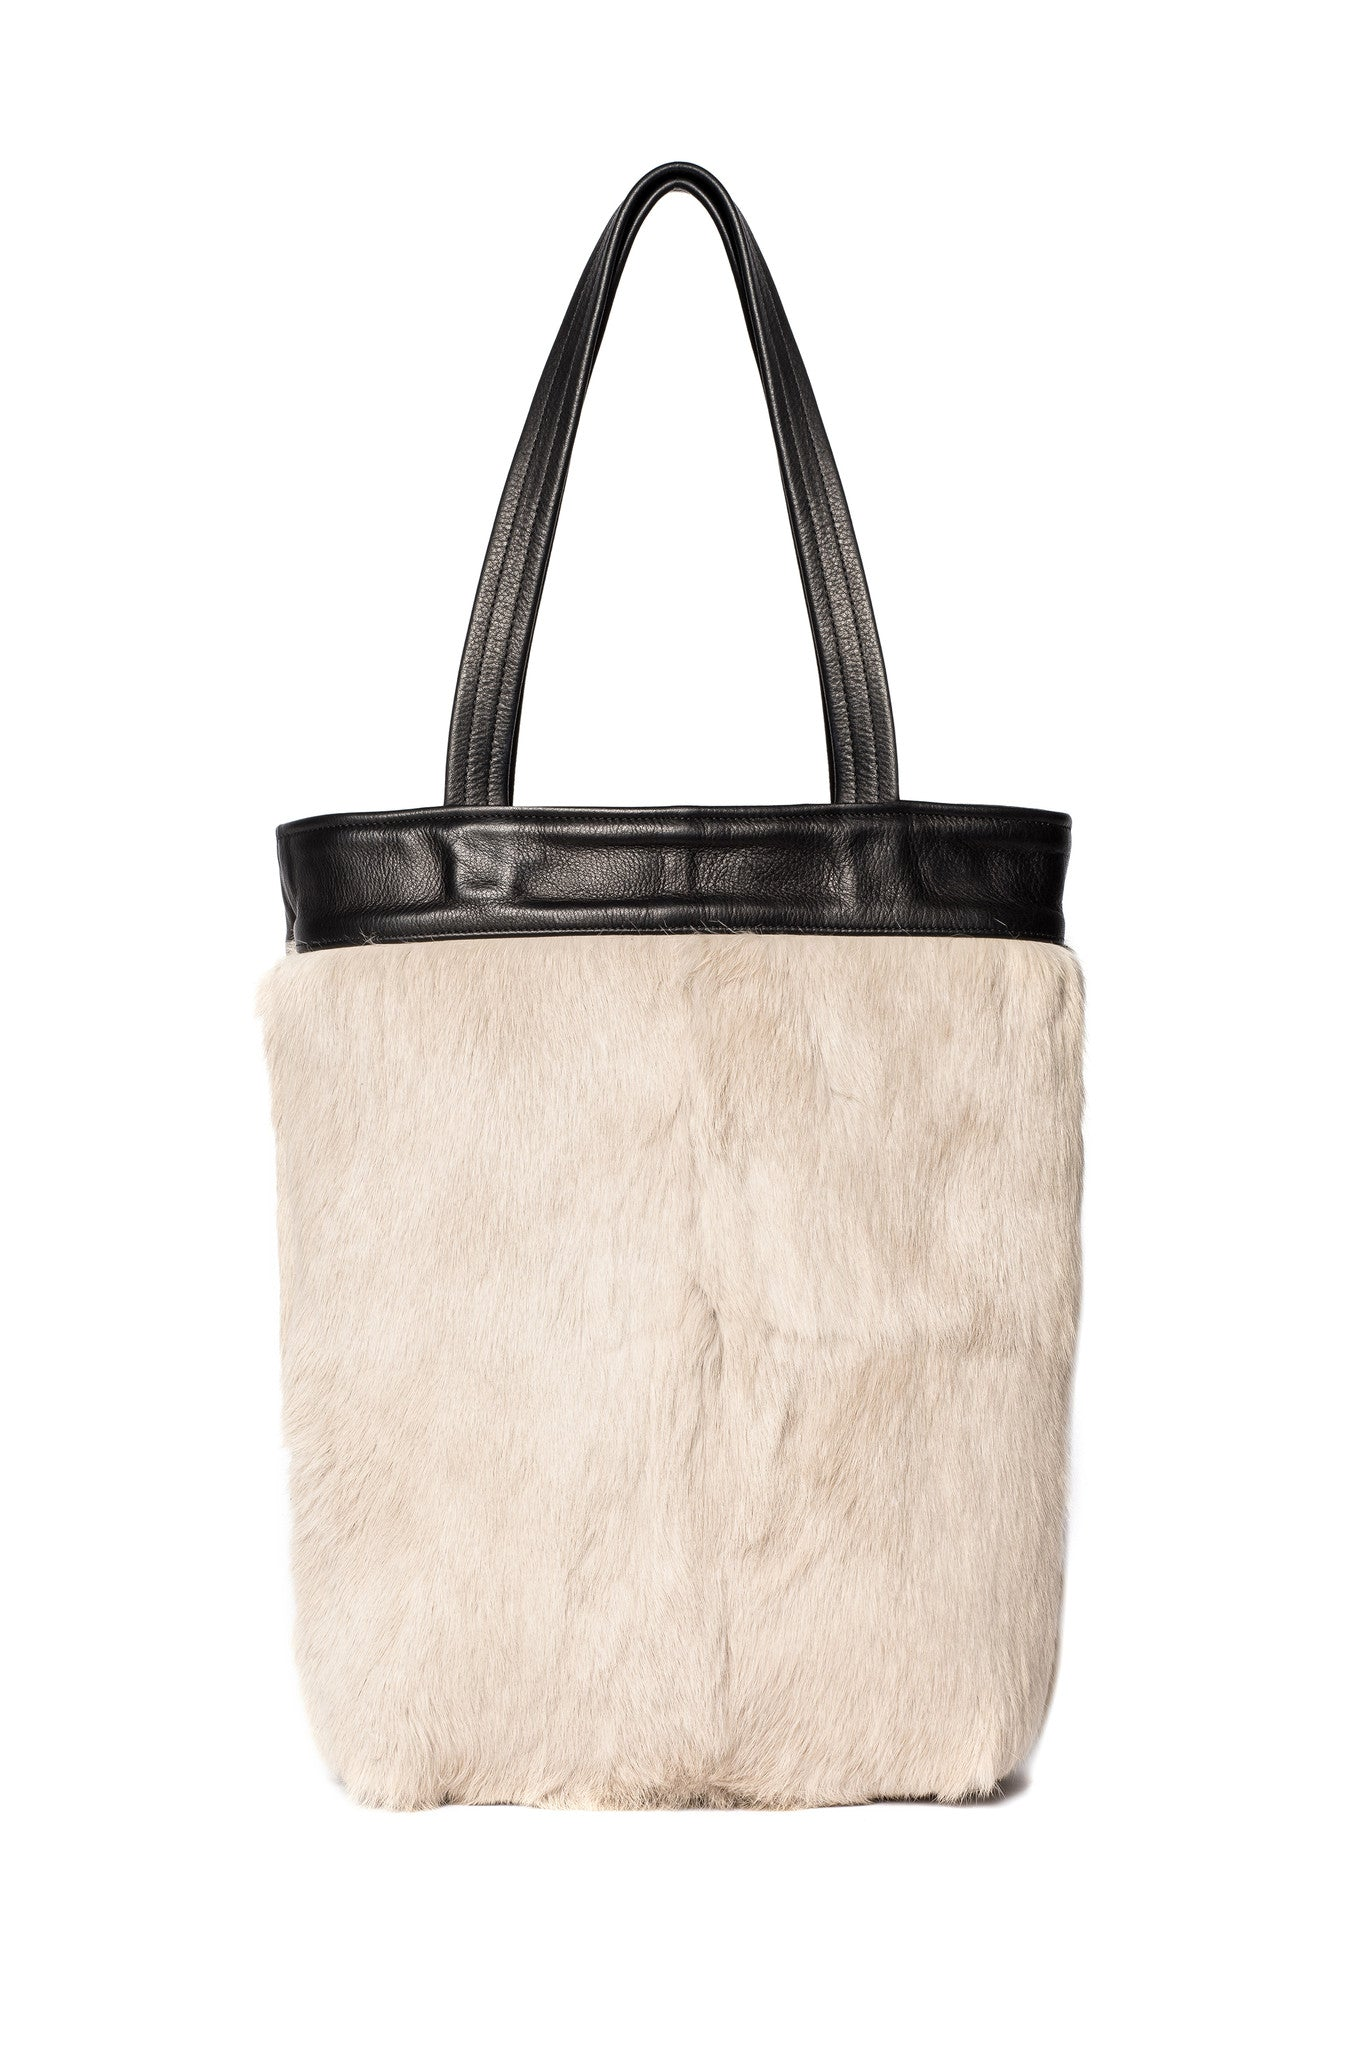 Cream Off White One-of-a-Kind Black Rabbit Fur Tote Black Leather Wendy Nichol Luxury Handbag Purse Bag Designer handmade in NYC New York City one of a kind Durable Handle strap Interior Pocket High Quality Leather